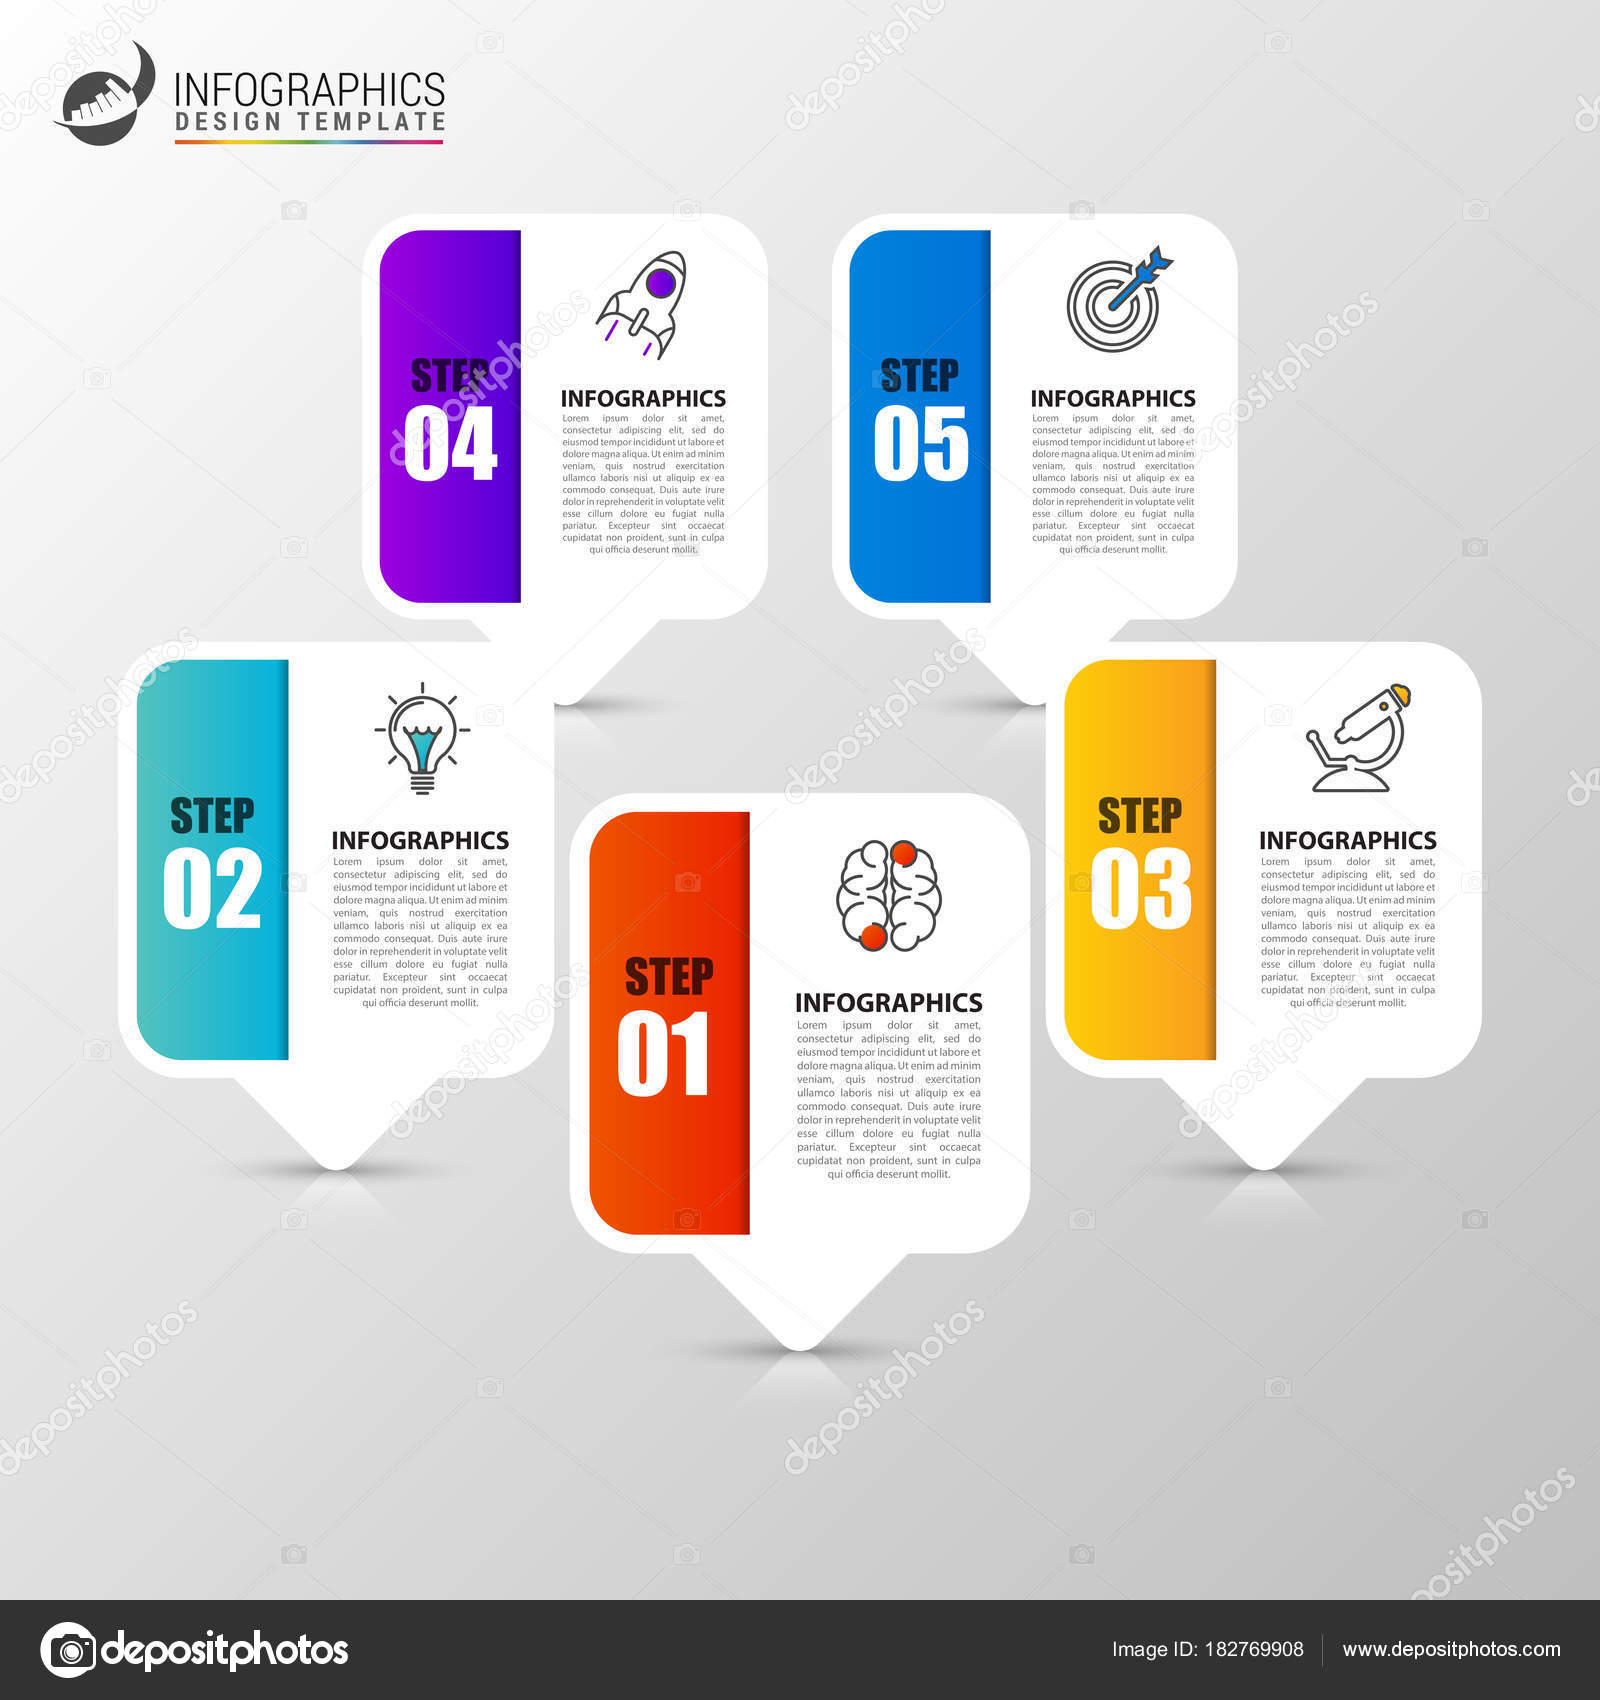 Infographic design template business concept with 5 steps stock infographic design template business concept with 5 steps stock vector cheaphphosting Images